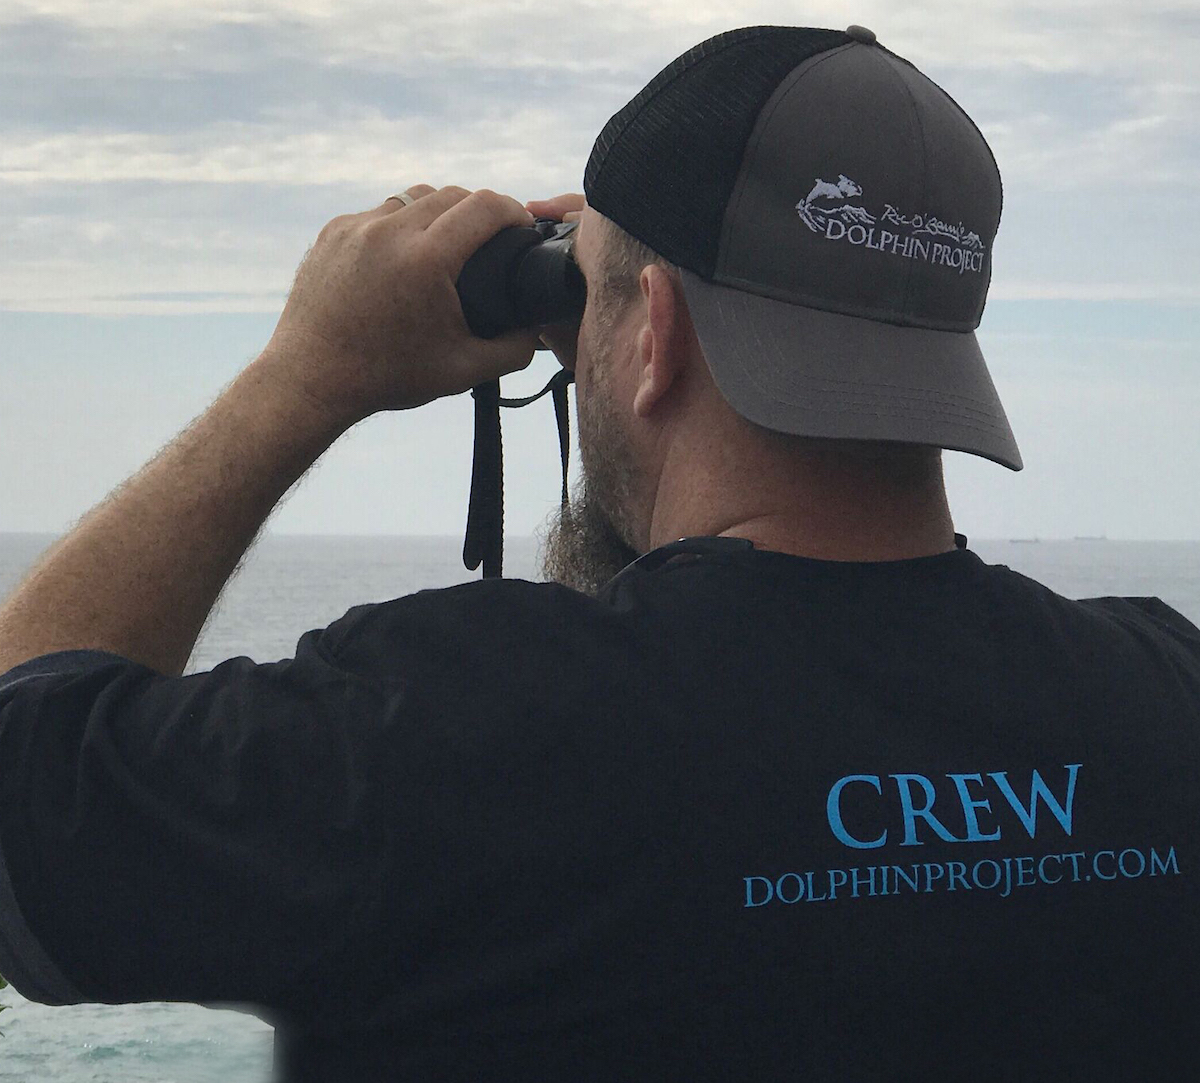 Dolphin Project Returns to the Cove